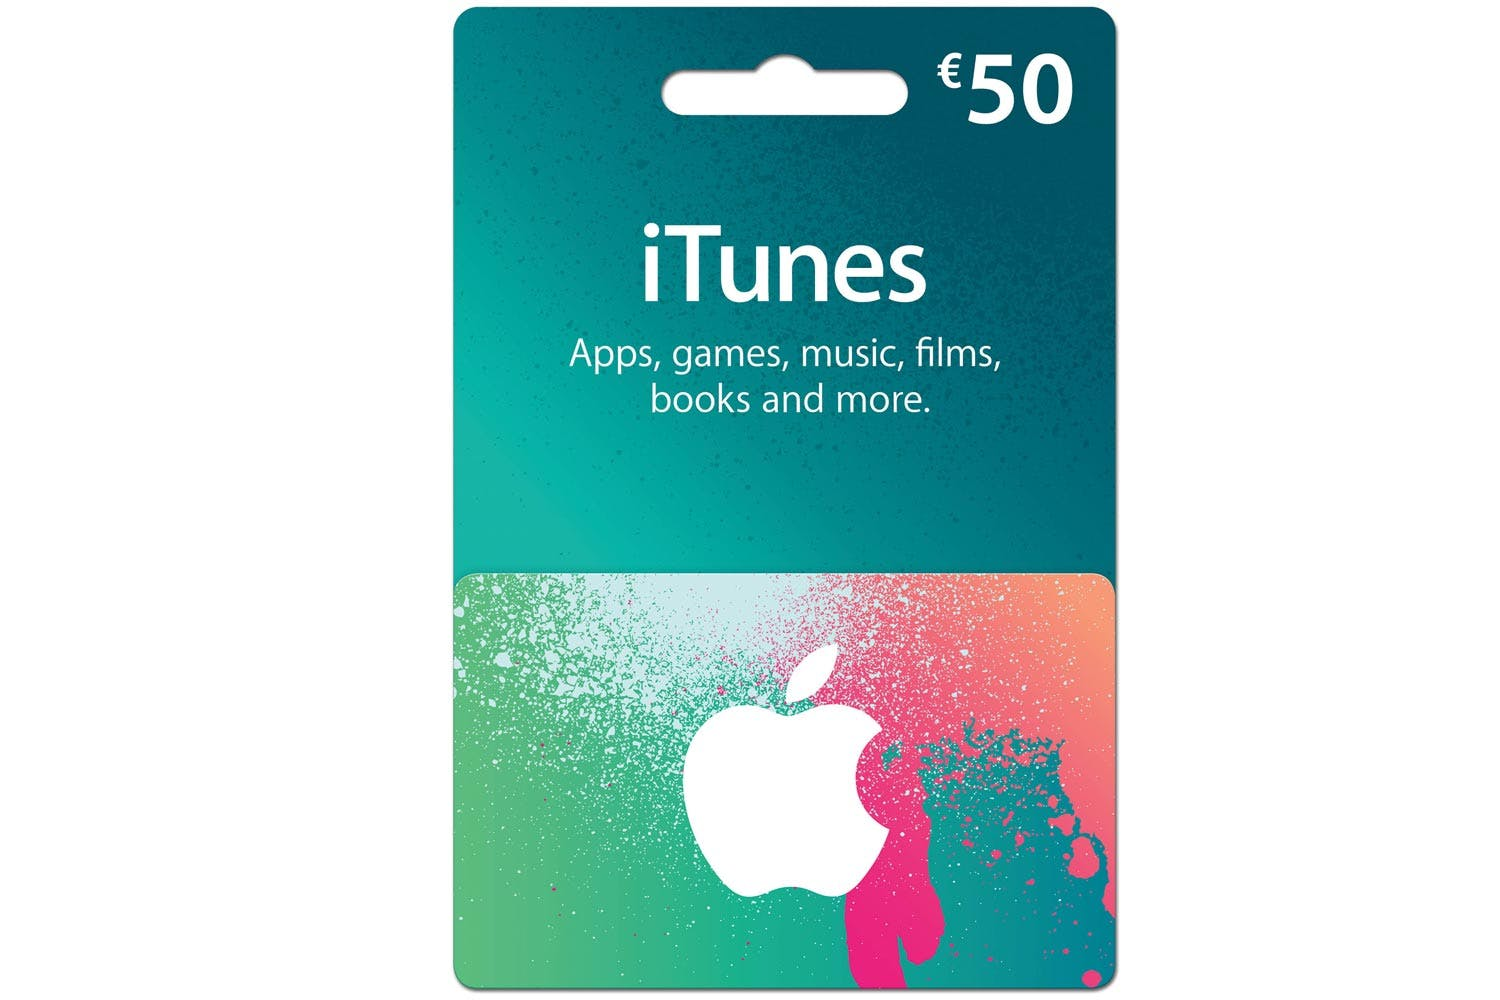 Itunes Gift Card 50 on art track lighting